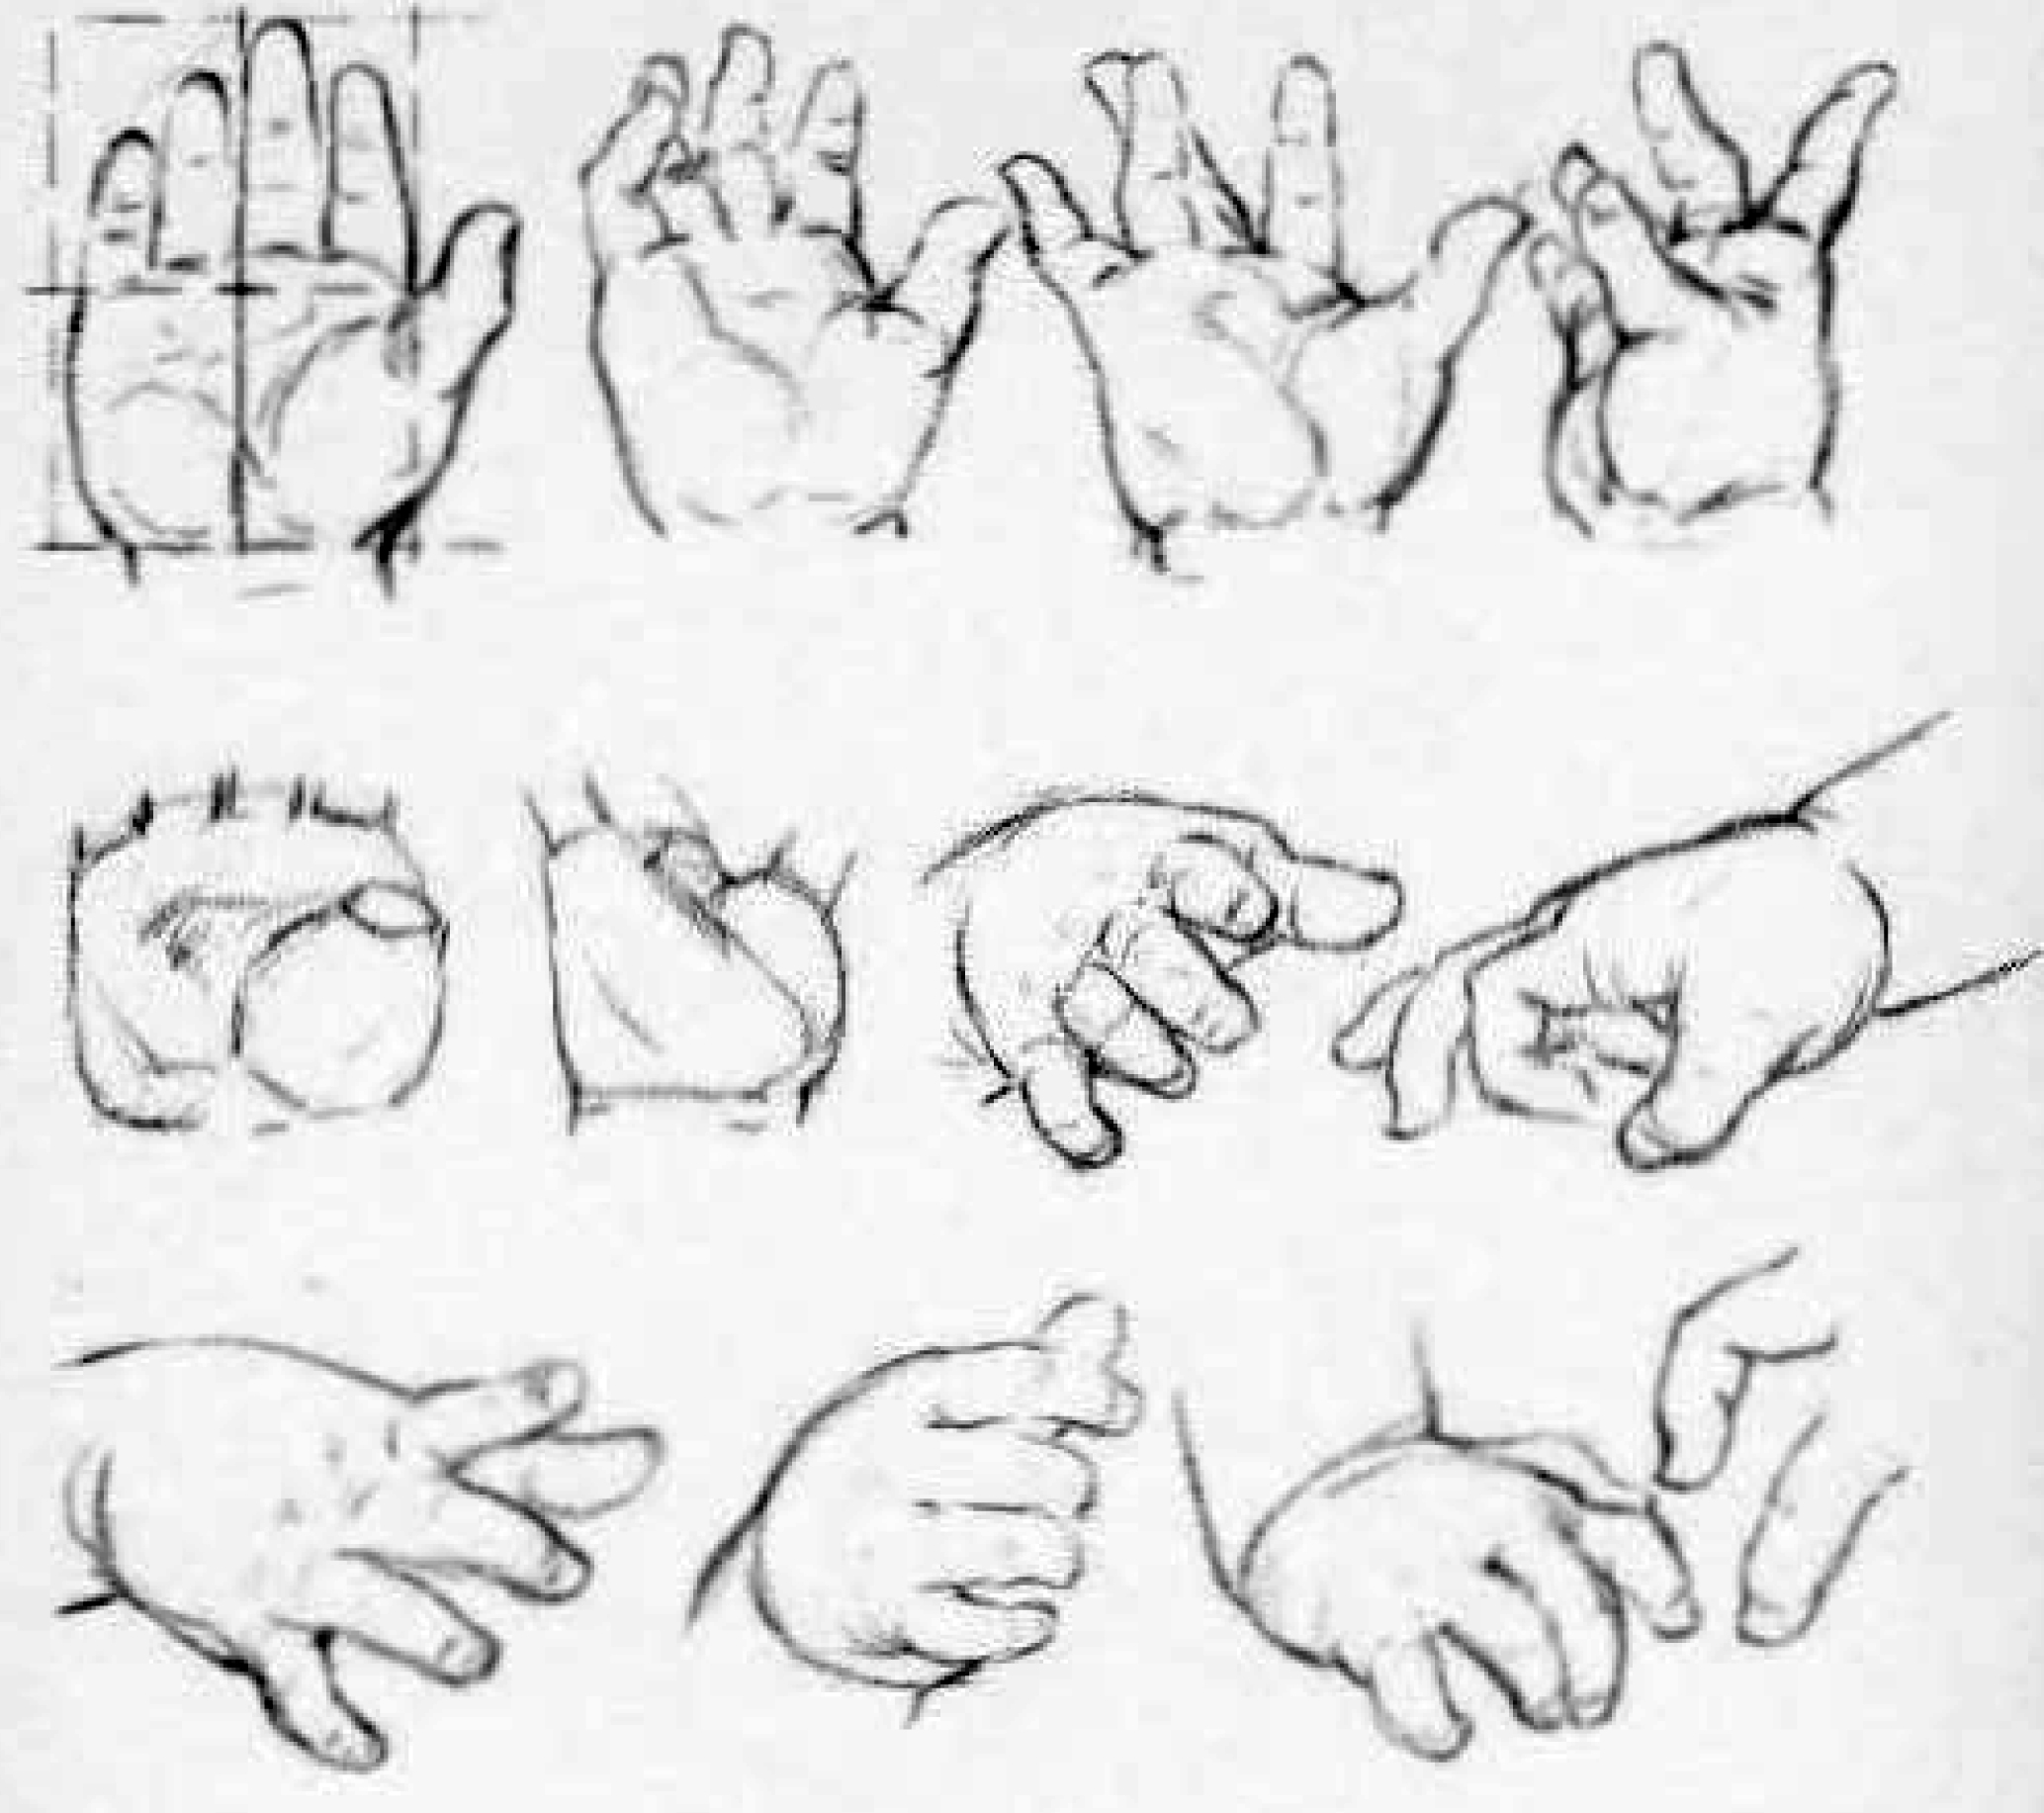 how to draw baby hands - drawing hands of babies